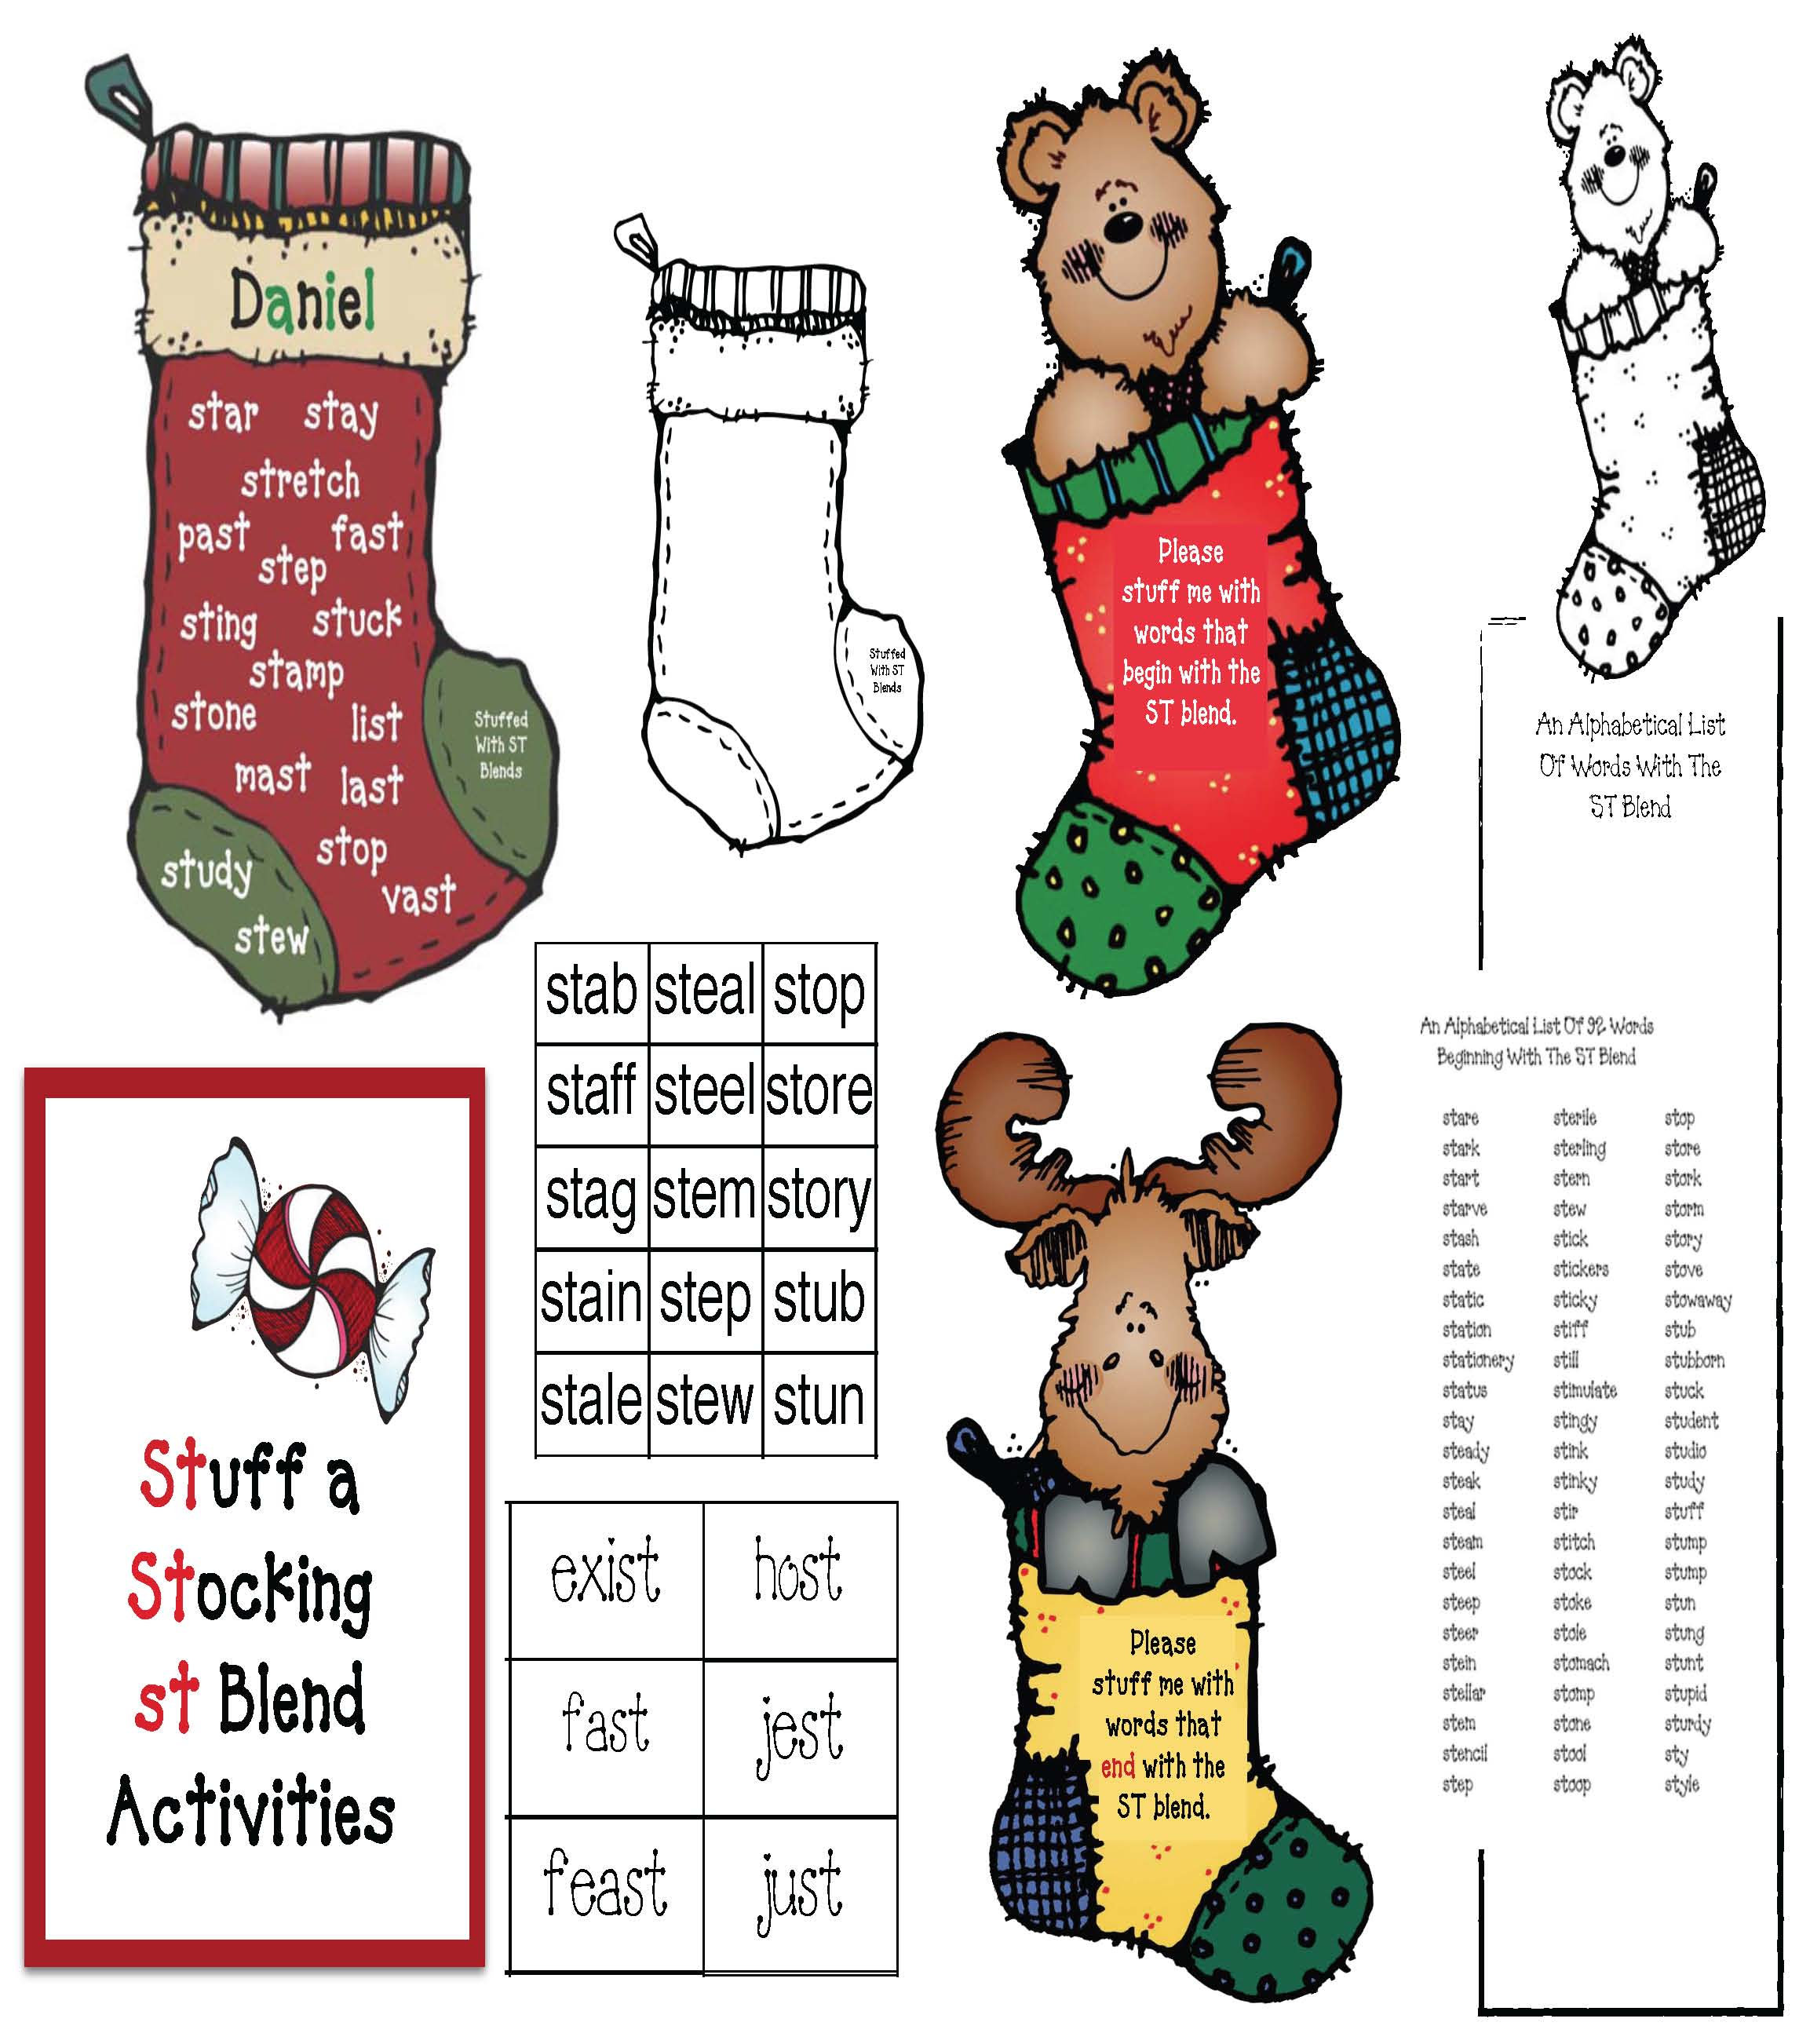 blends, phonemes, digraphs, st blend, activities for the st blend, list of words that begin with st, list of words that end with st, stocking crafts, Christmas games, word games, daily 5 activities, daily 5 word work, word games, daily 5 activities for december